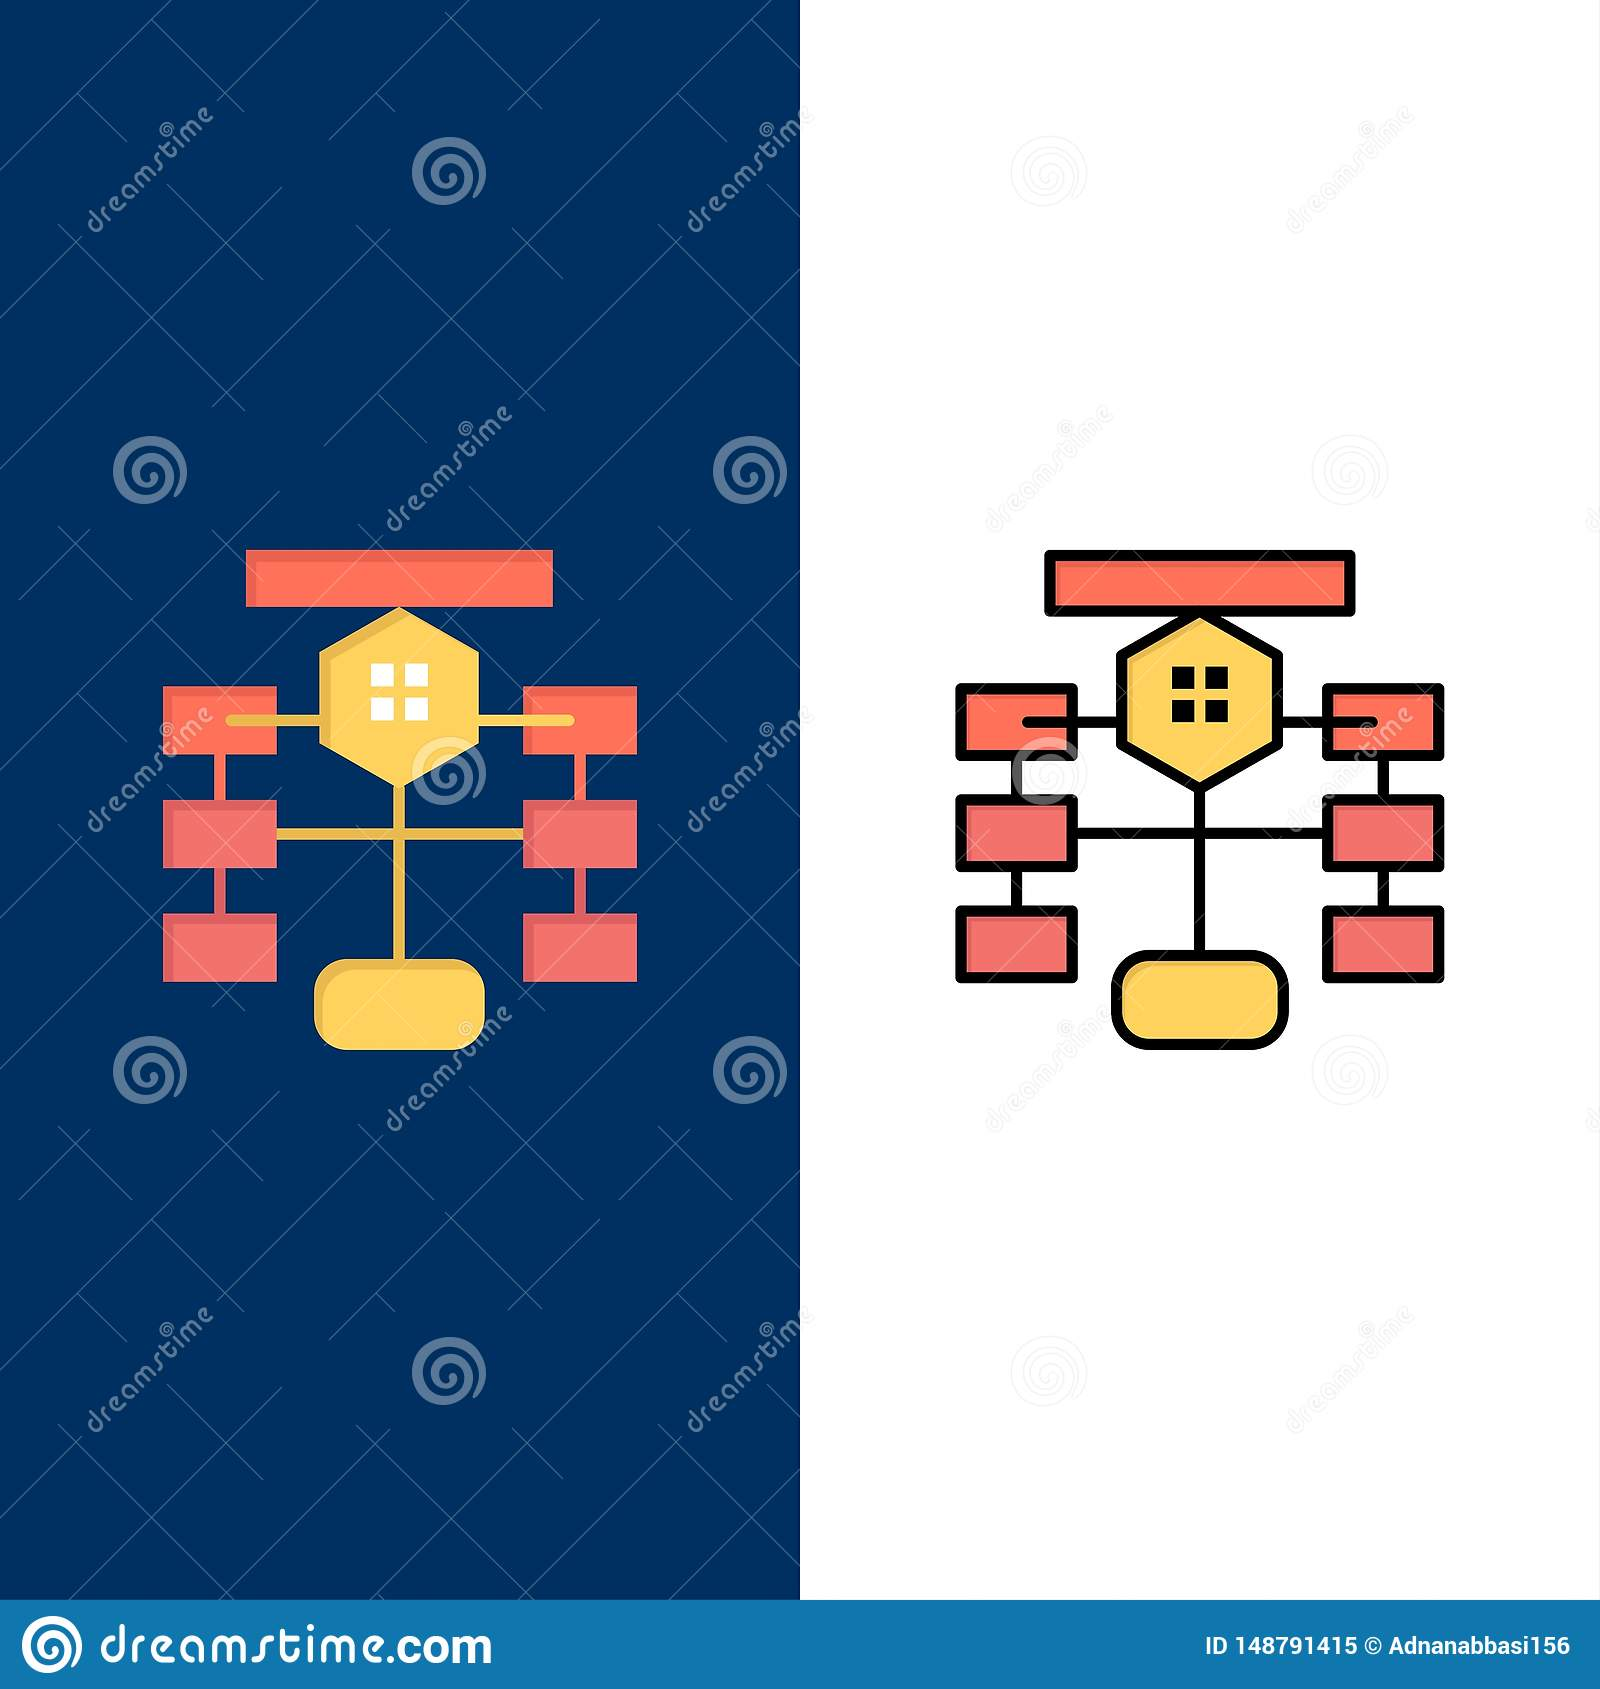 Flowchart, Flow, Chart, Data, Database Icons. Flat and Line Filled Icon Set Vector Blue Background